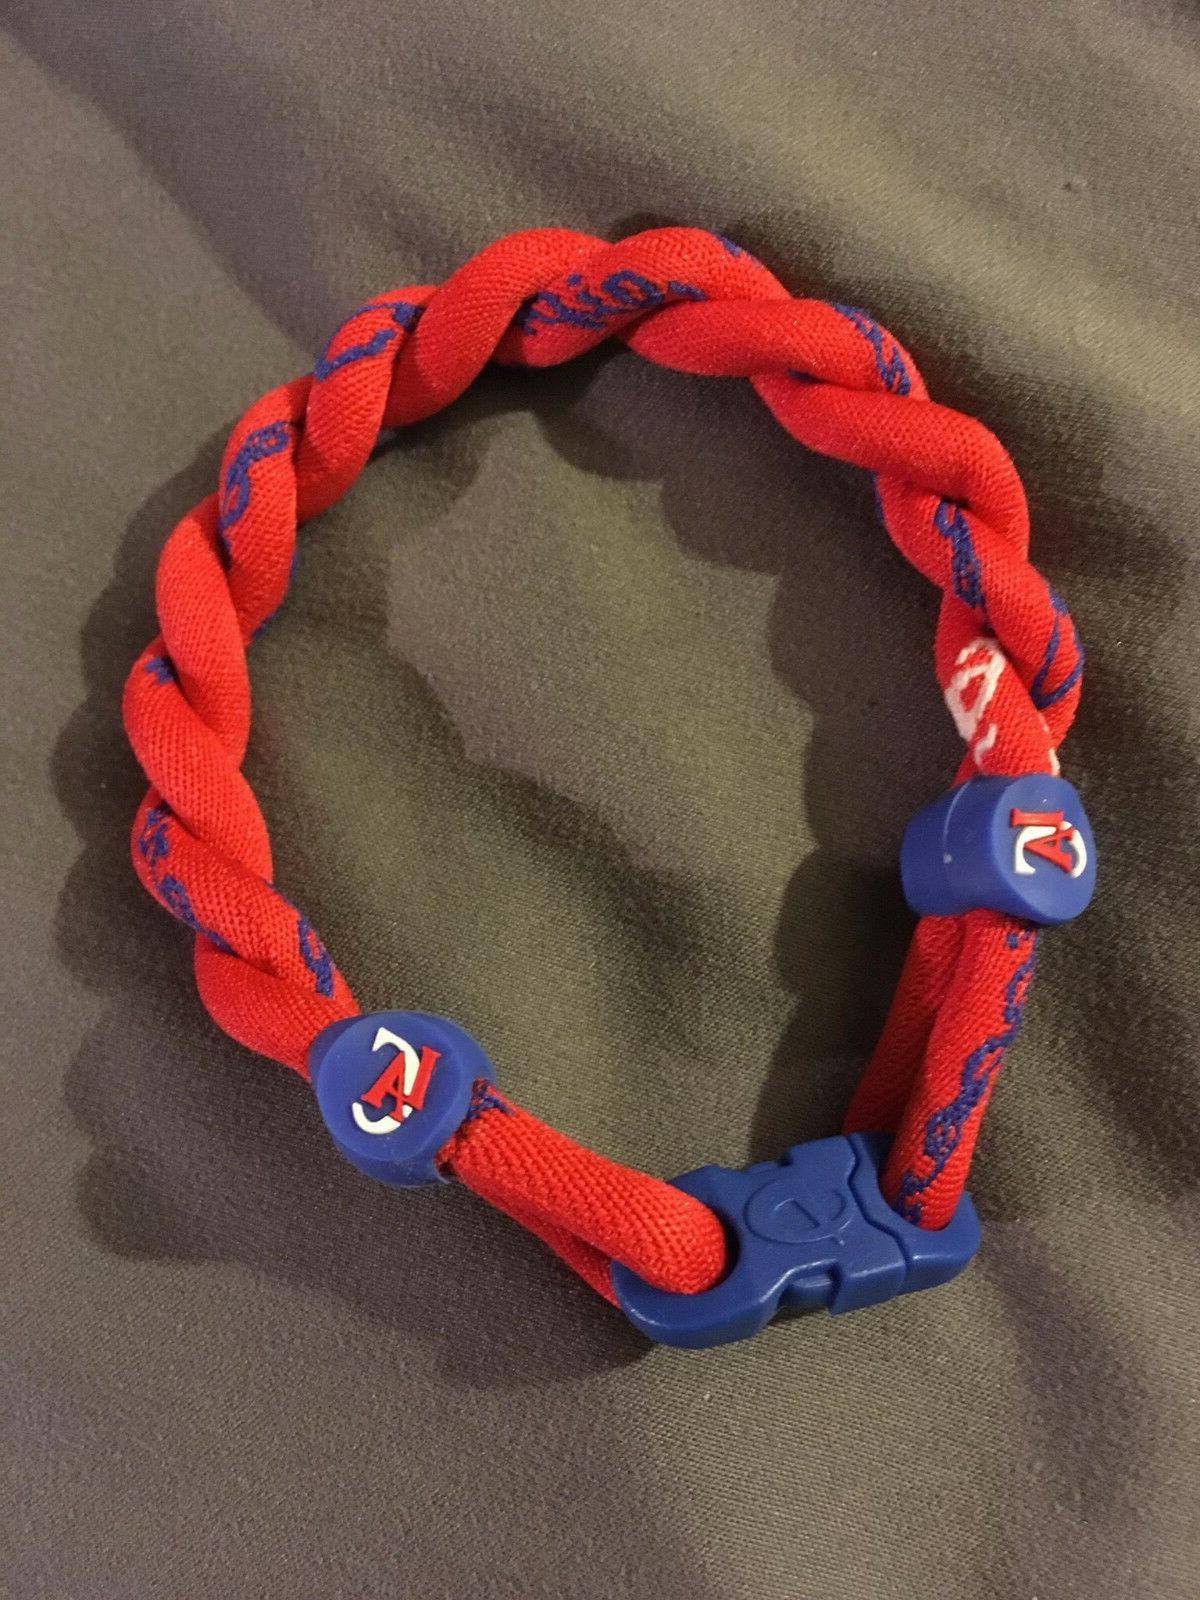 los angeles clippers red 8 titanium double